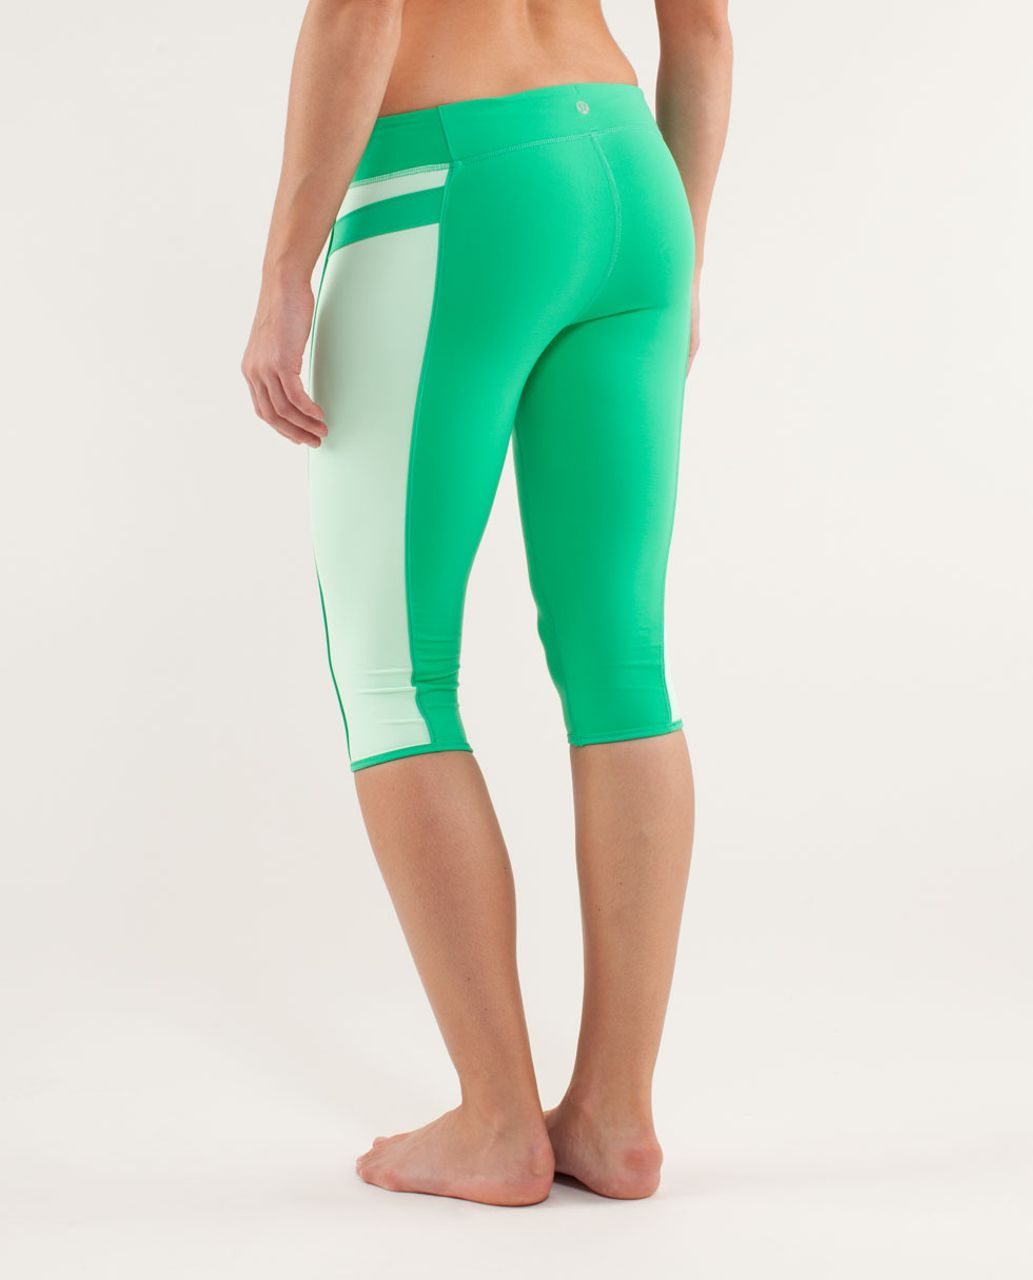 Lululemon Heat It Up Crop - Very Green / Fresh Teal